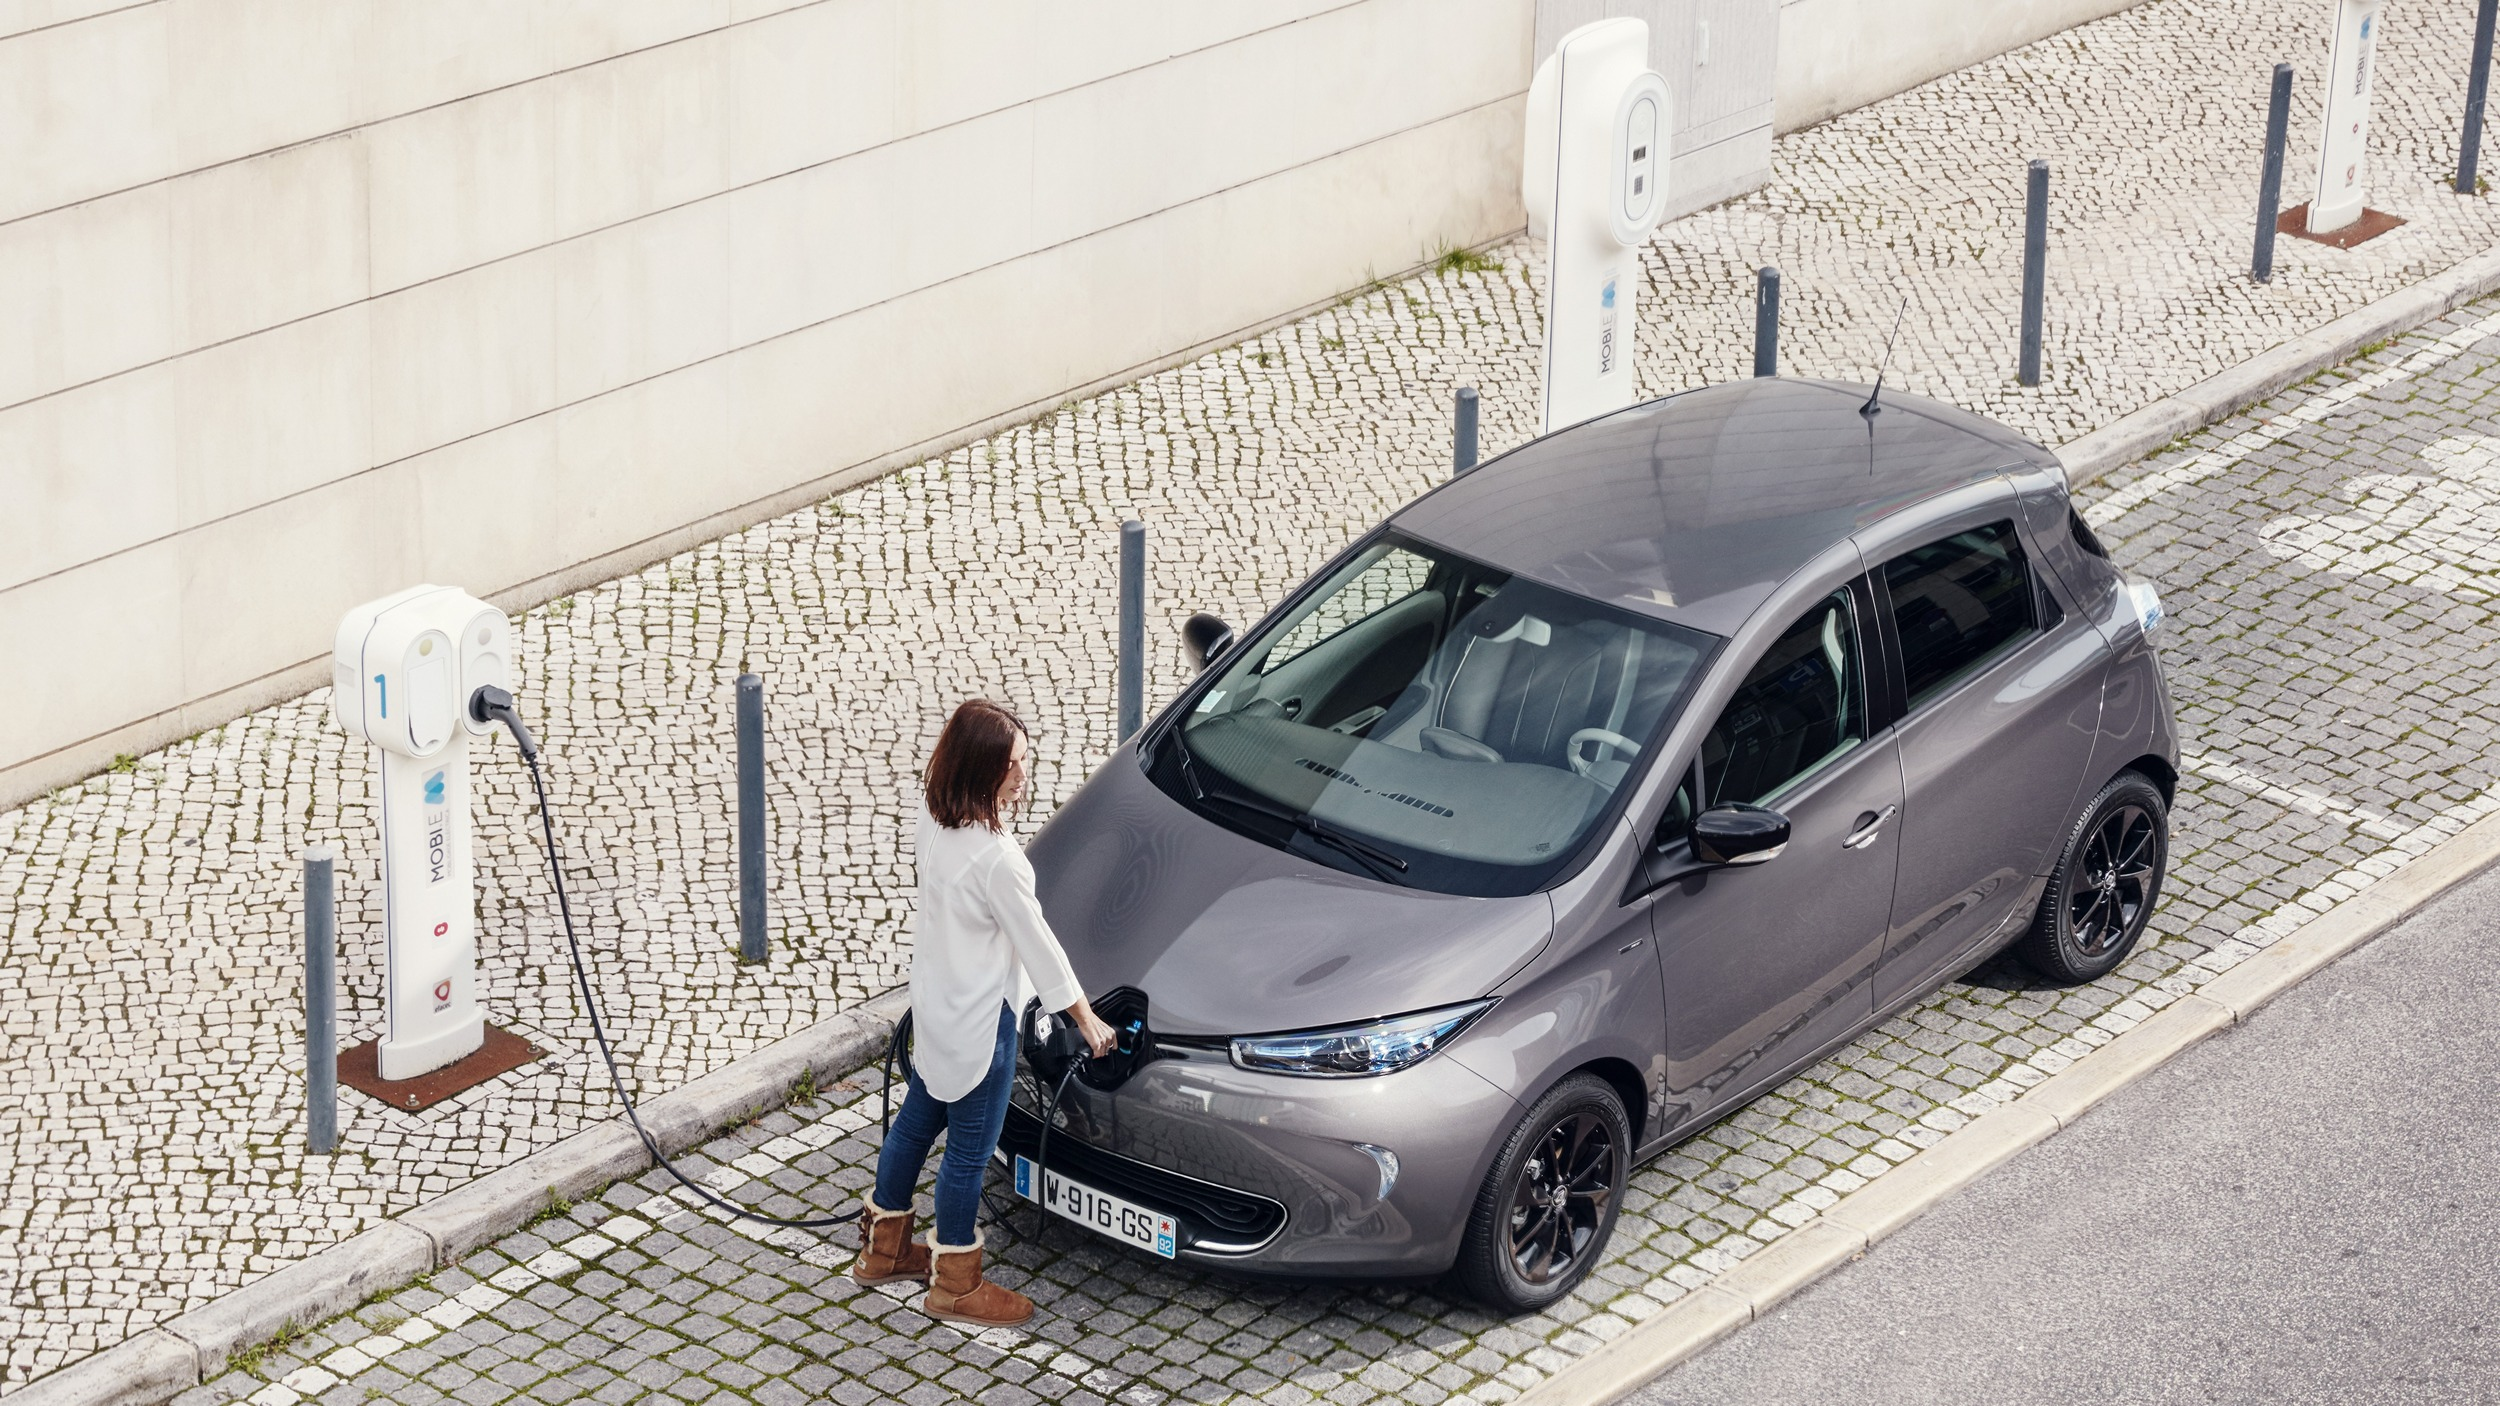 2017 Renault Zoe review: A cure for range anxiety | Ars Technica